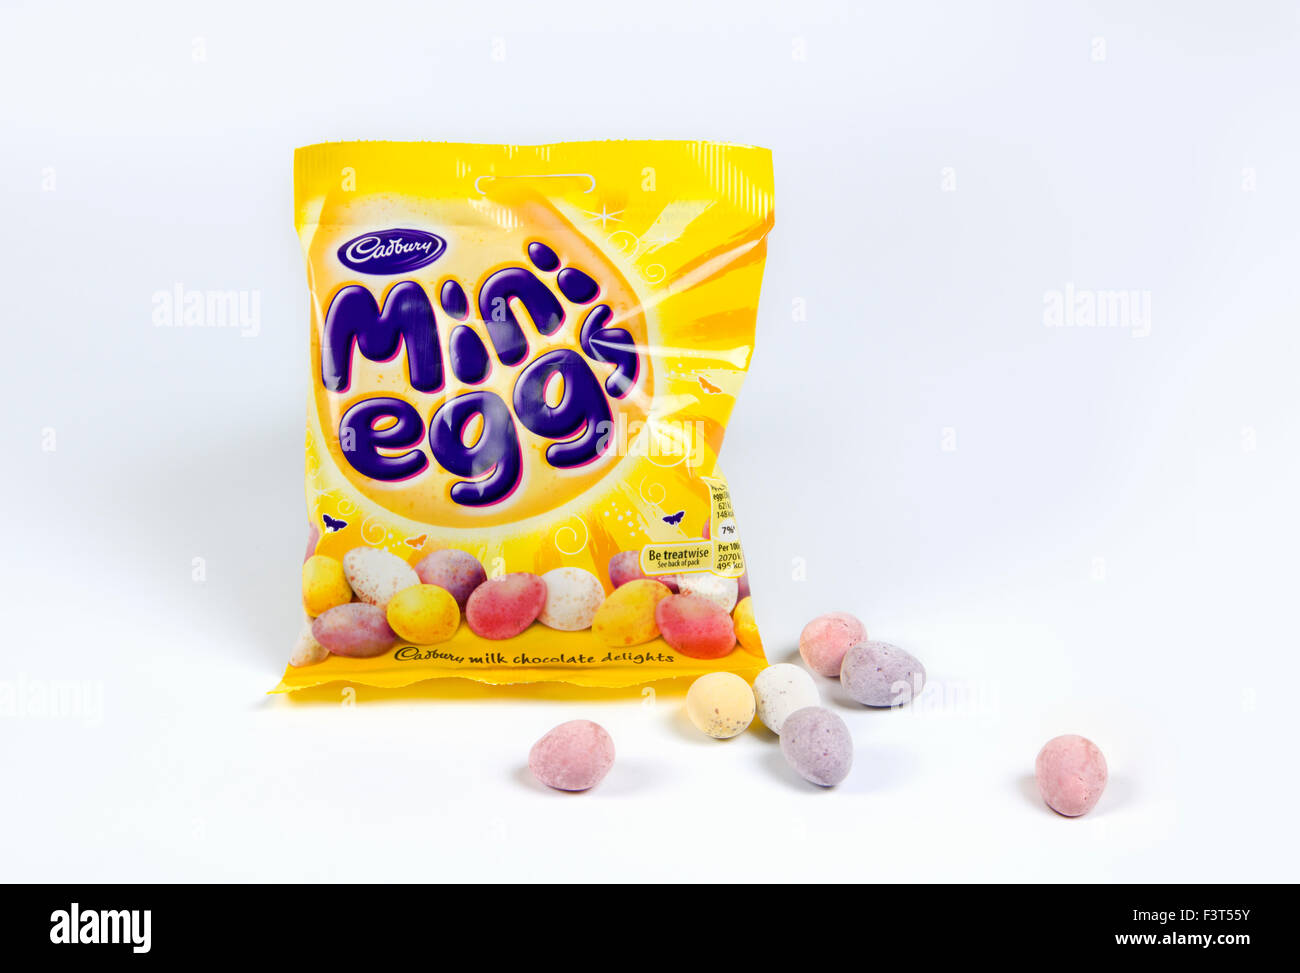 Cadbury mini eggs on whit background Stock Photo